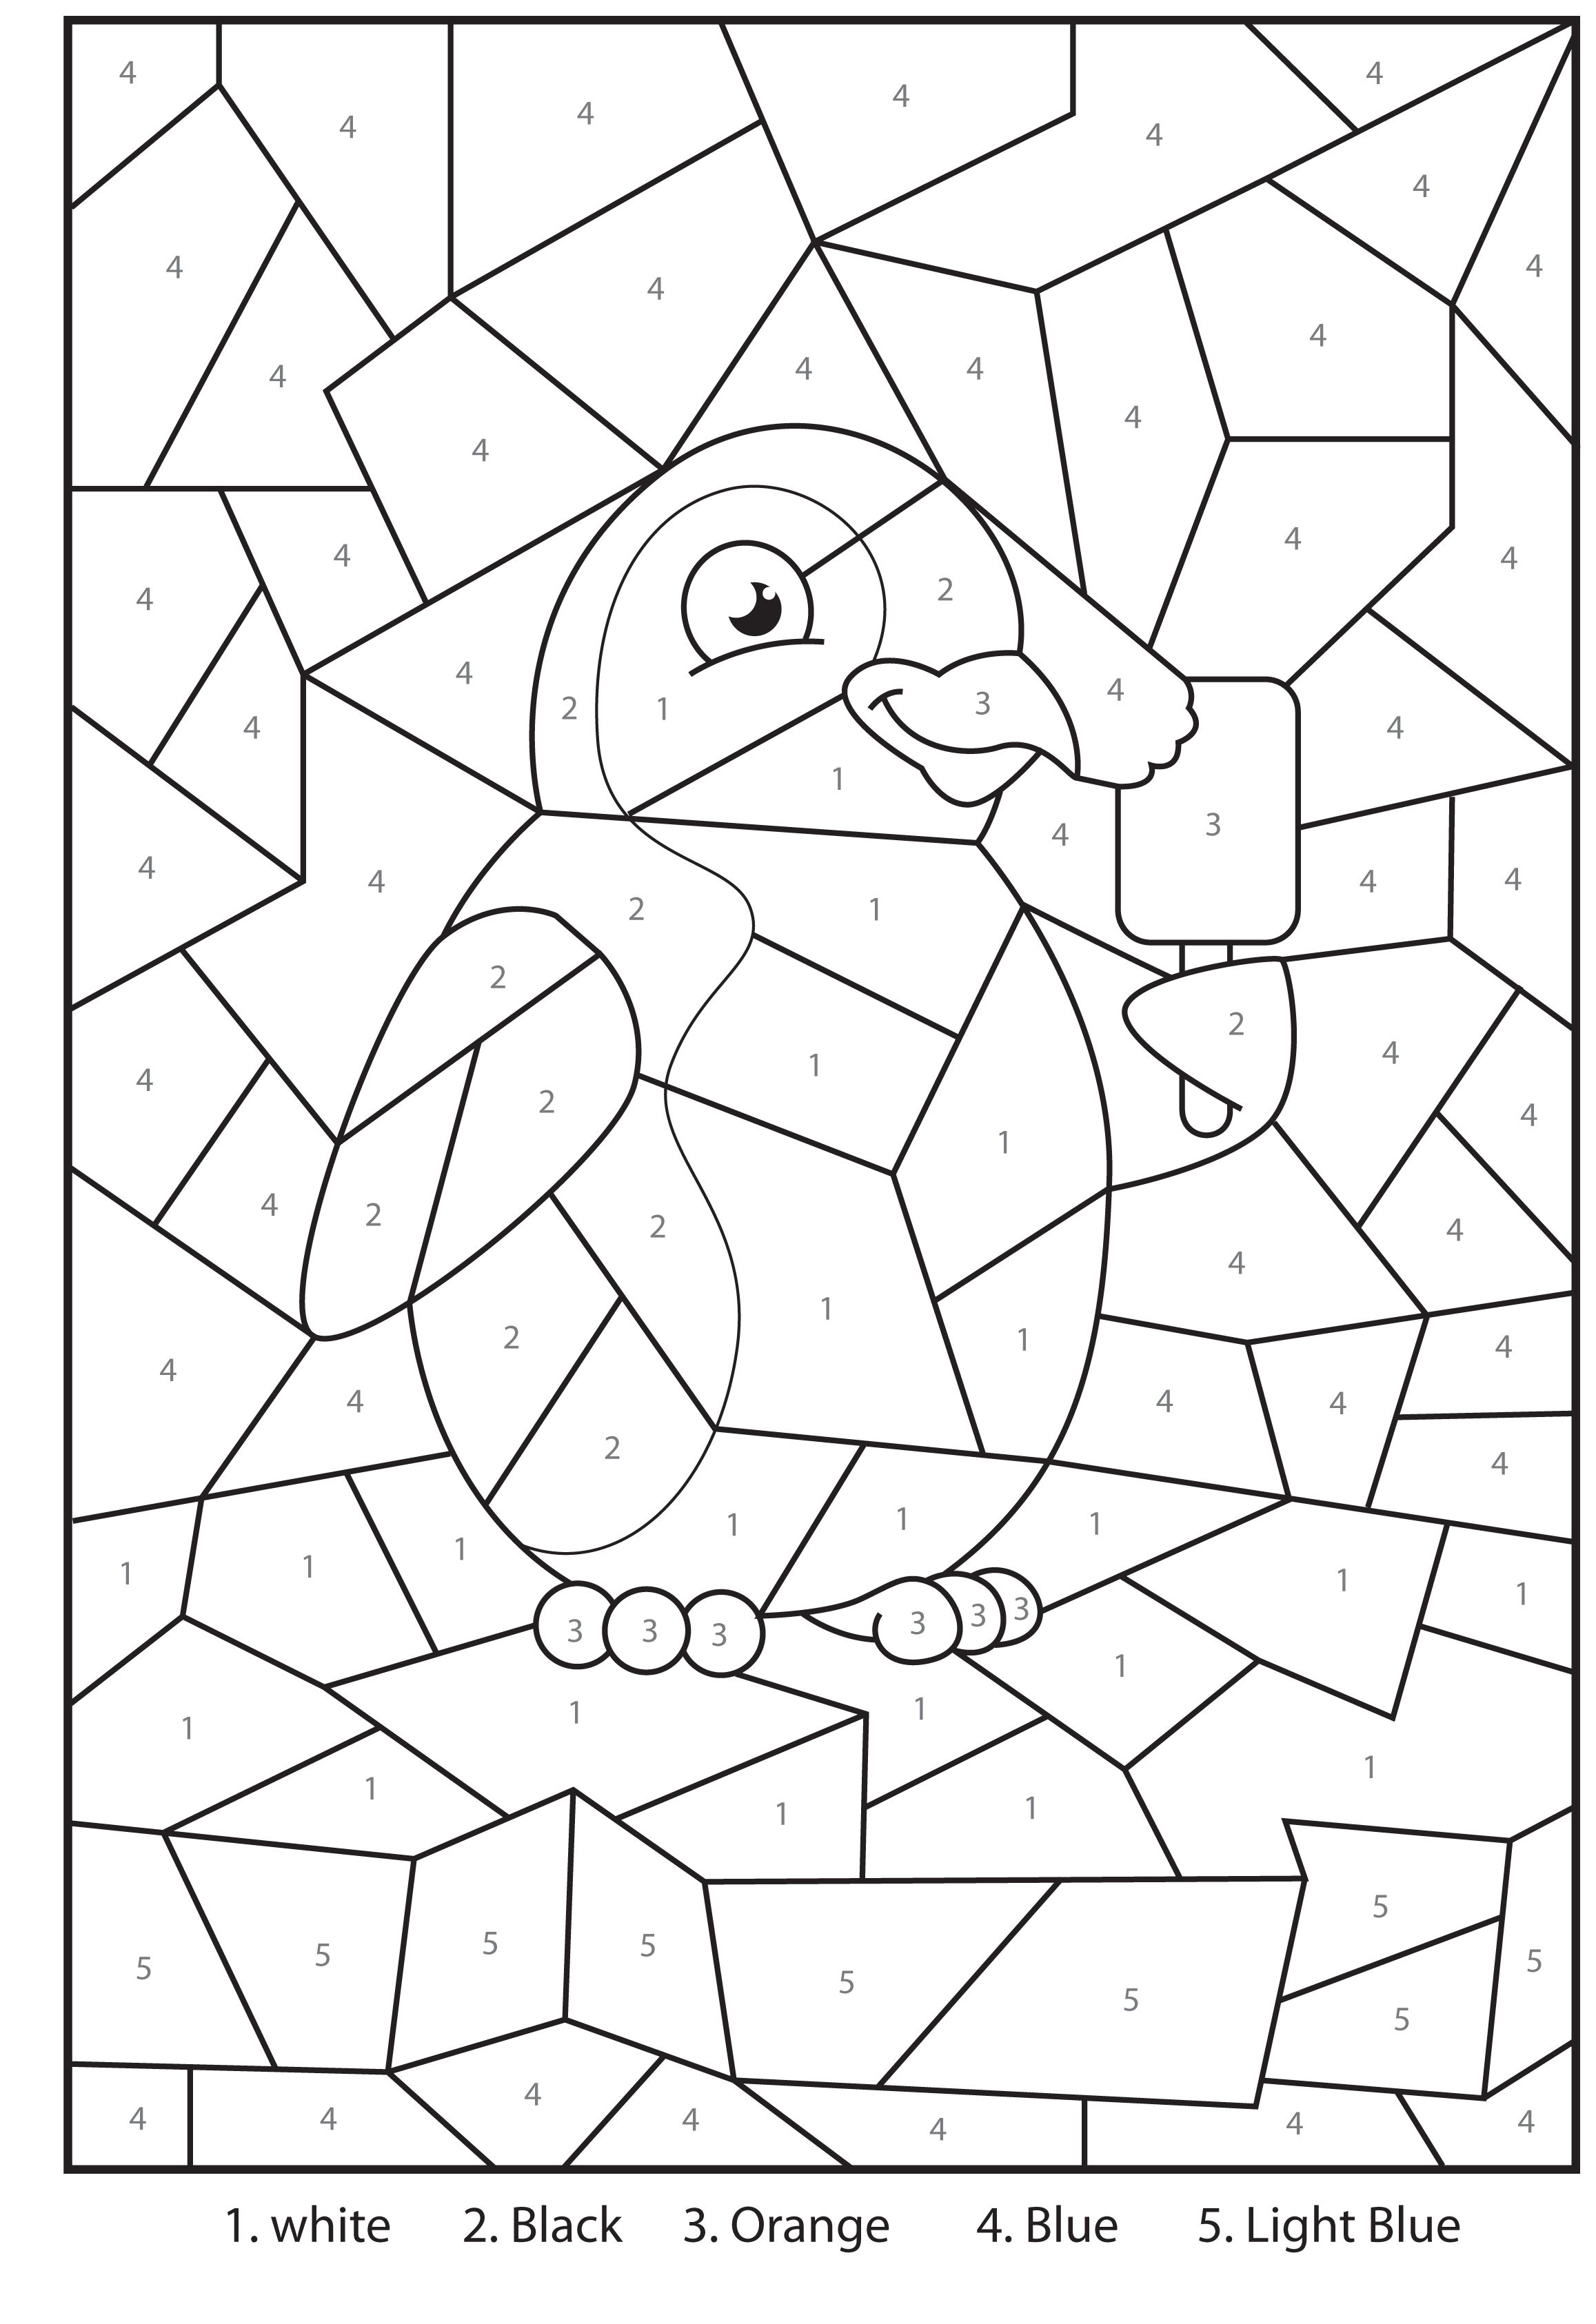 Worksheet. Free Printable Penguin At The Zoo Colour By Numbers Activity For